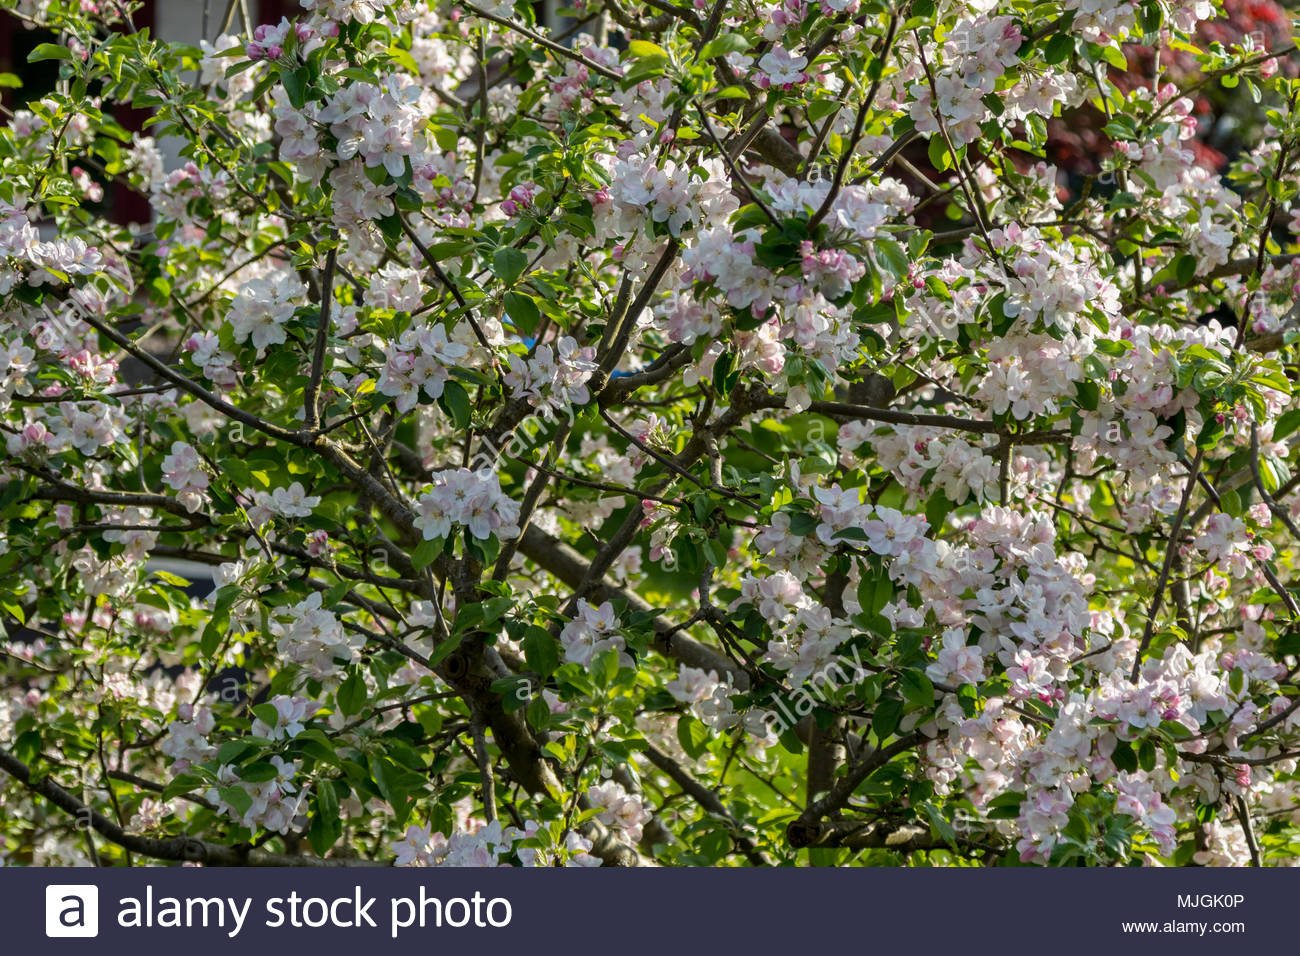 A mass of blossom on a Cornish Gilliflower apple tree(Malus domestica). A Victorian era variety used by the RHS as a tasting reference. - Stock Image